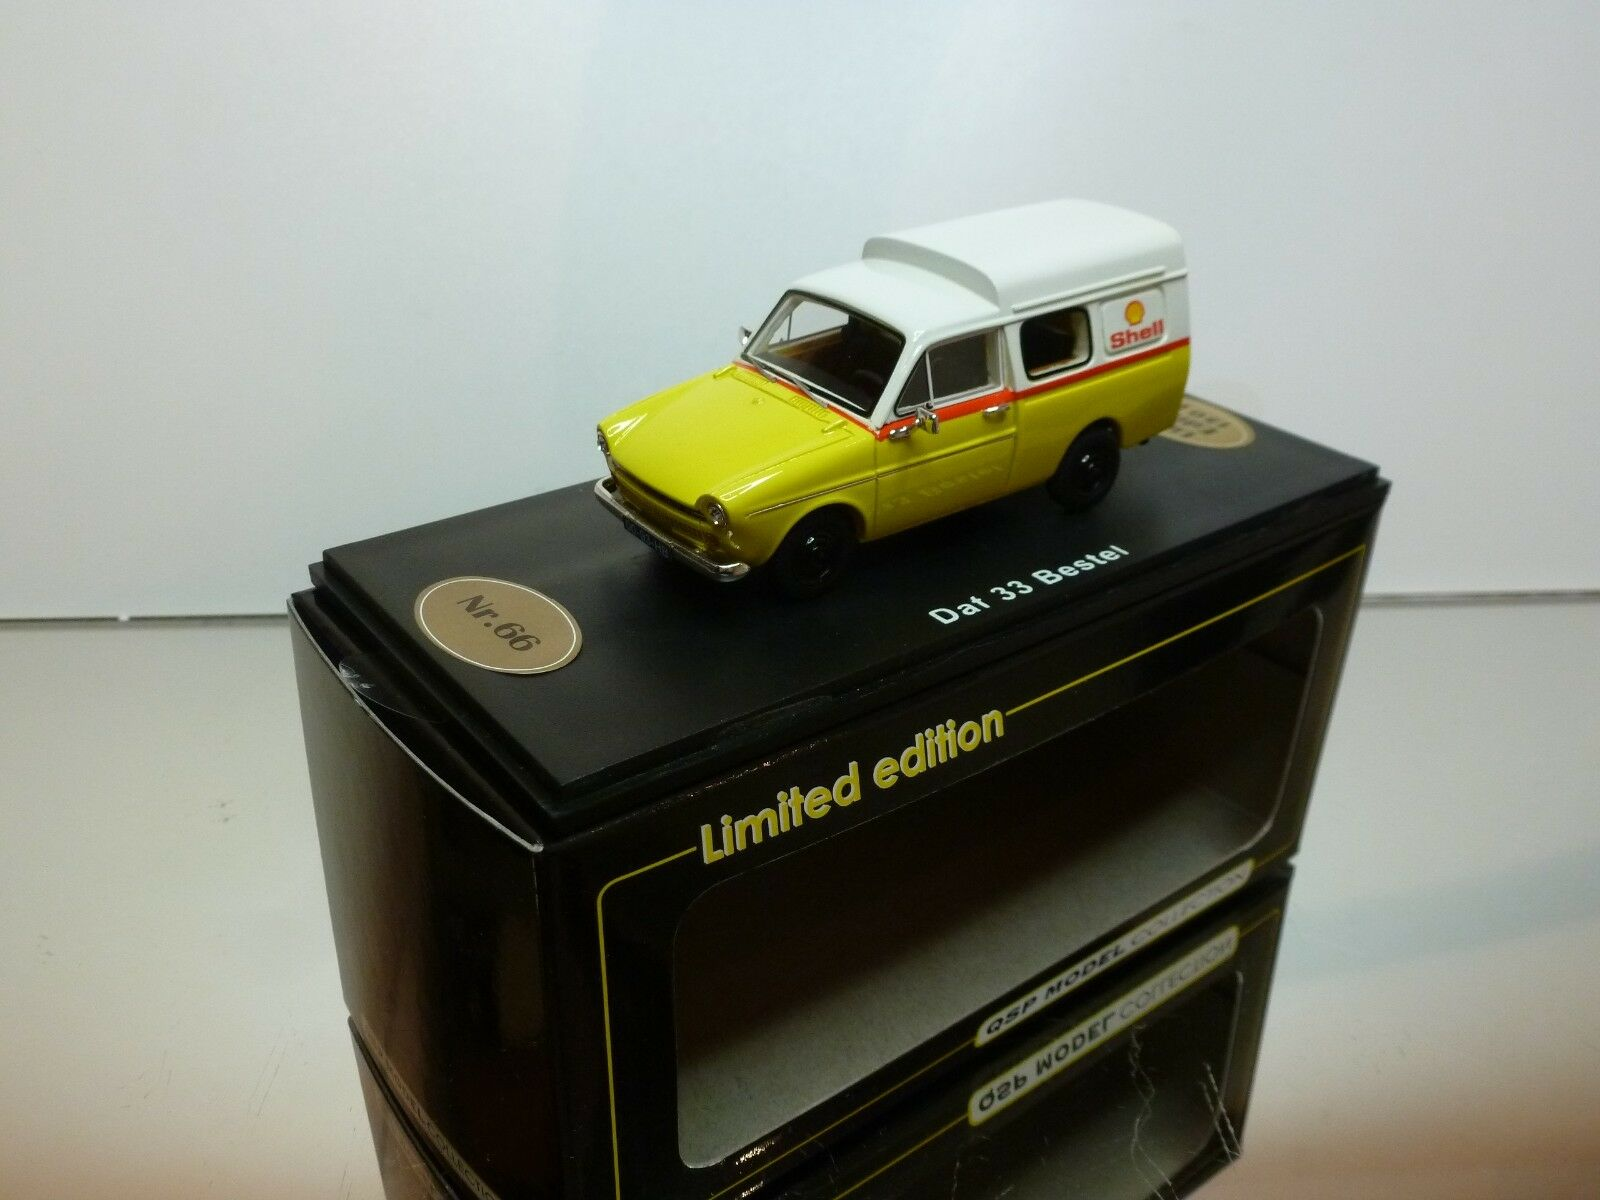 QSP MODEL DAF 33 BESTEL SHELL - giallo + bianca 1 43 - EXCELLENT IN BOX